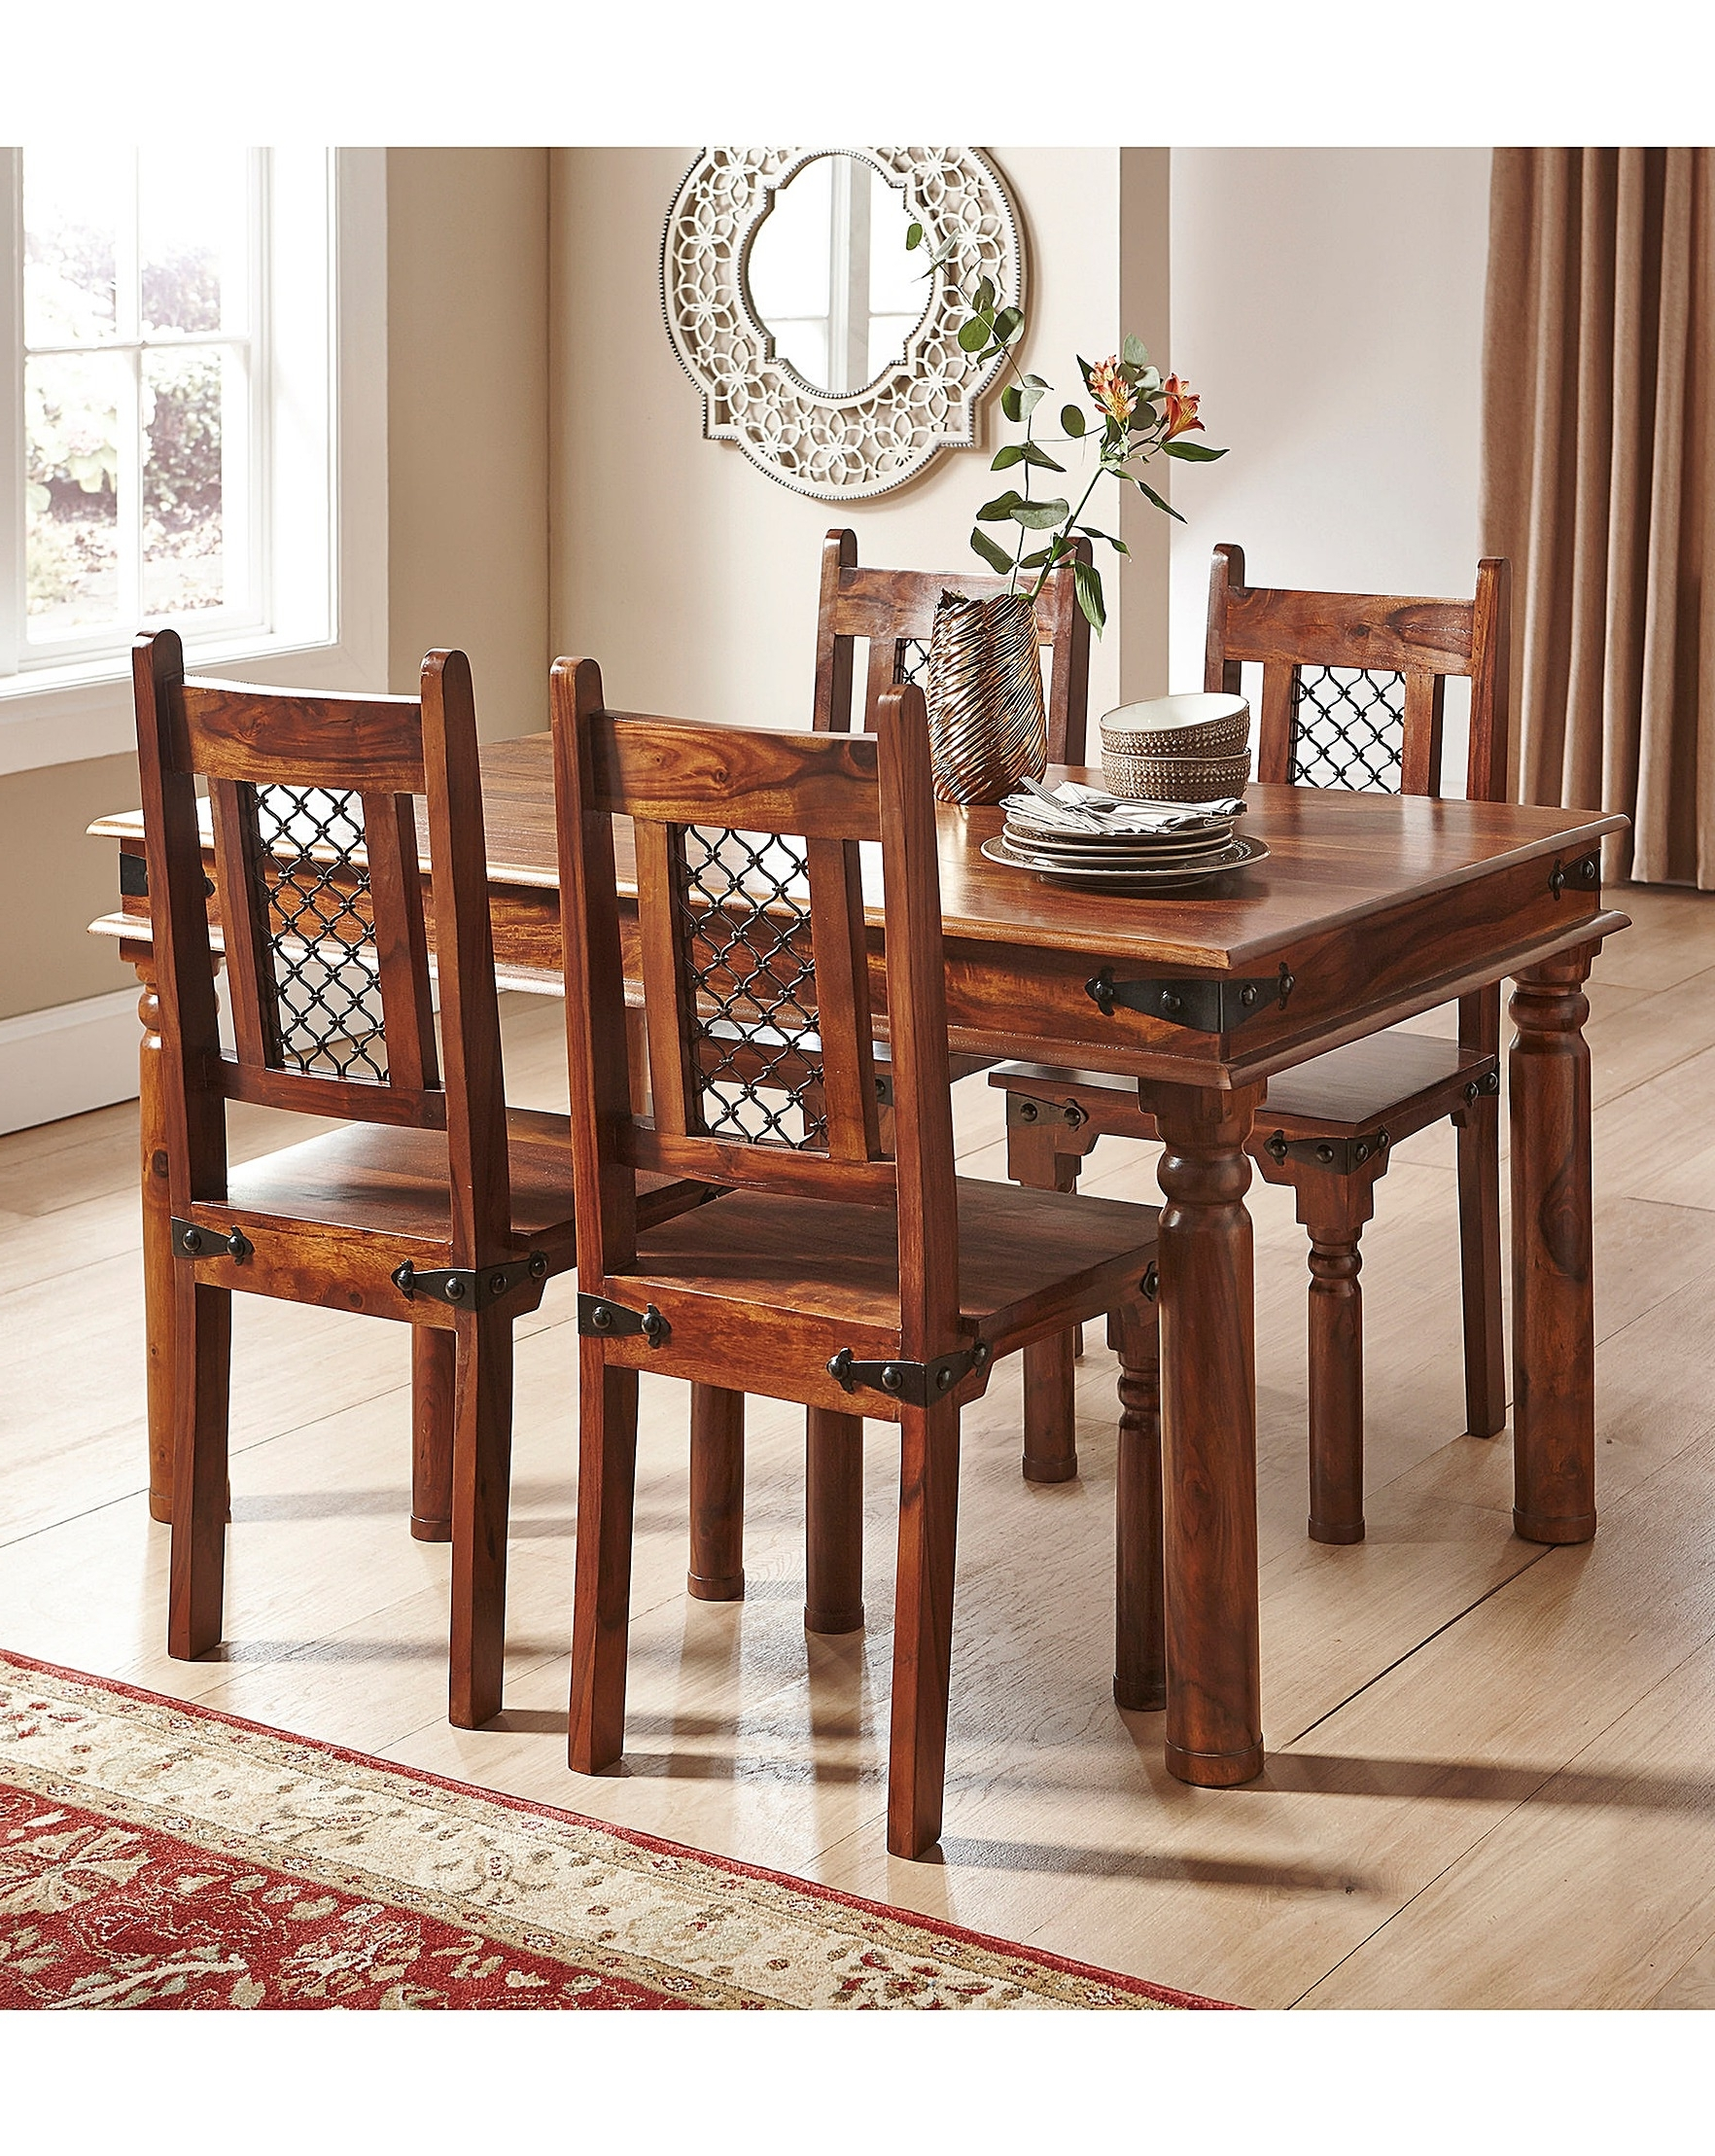 2017 Jaipur Sheesham Dining Table & 4 Chairs (View 15 of 25)